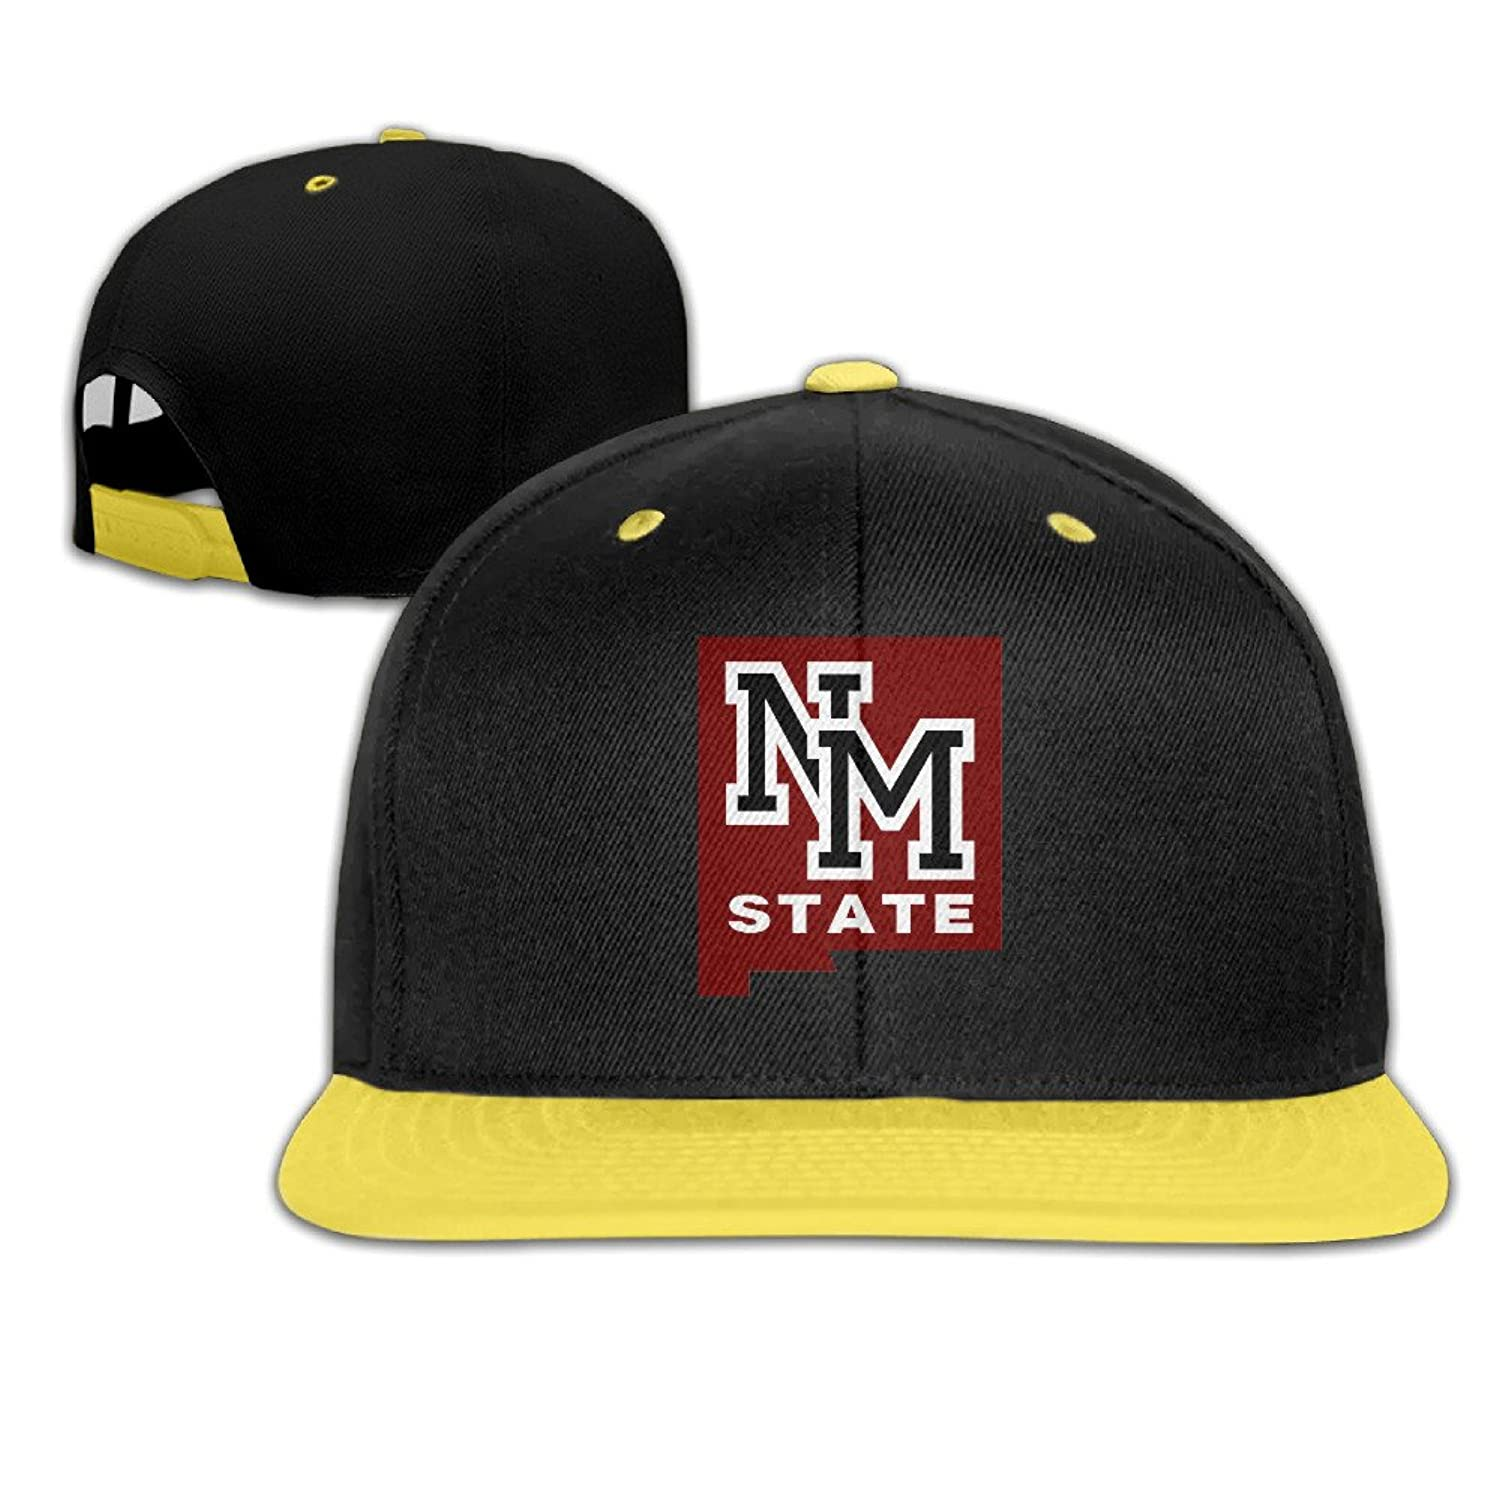 Youth Boys Fitted Caps New Mexico State University Logo Adjustable Shop Snapbacks